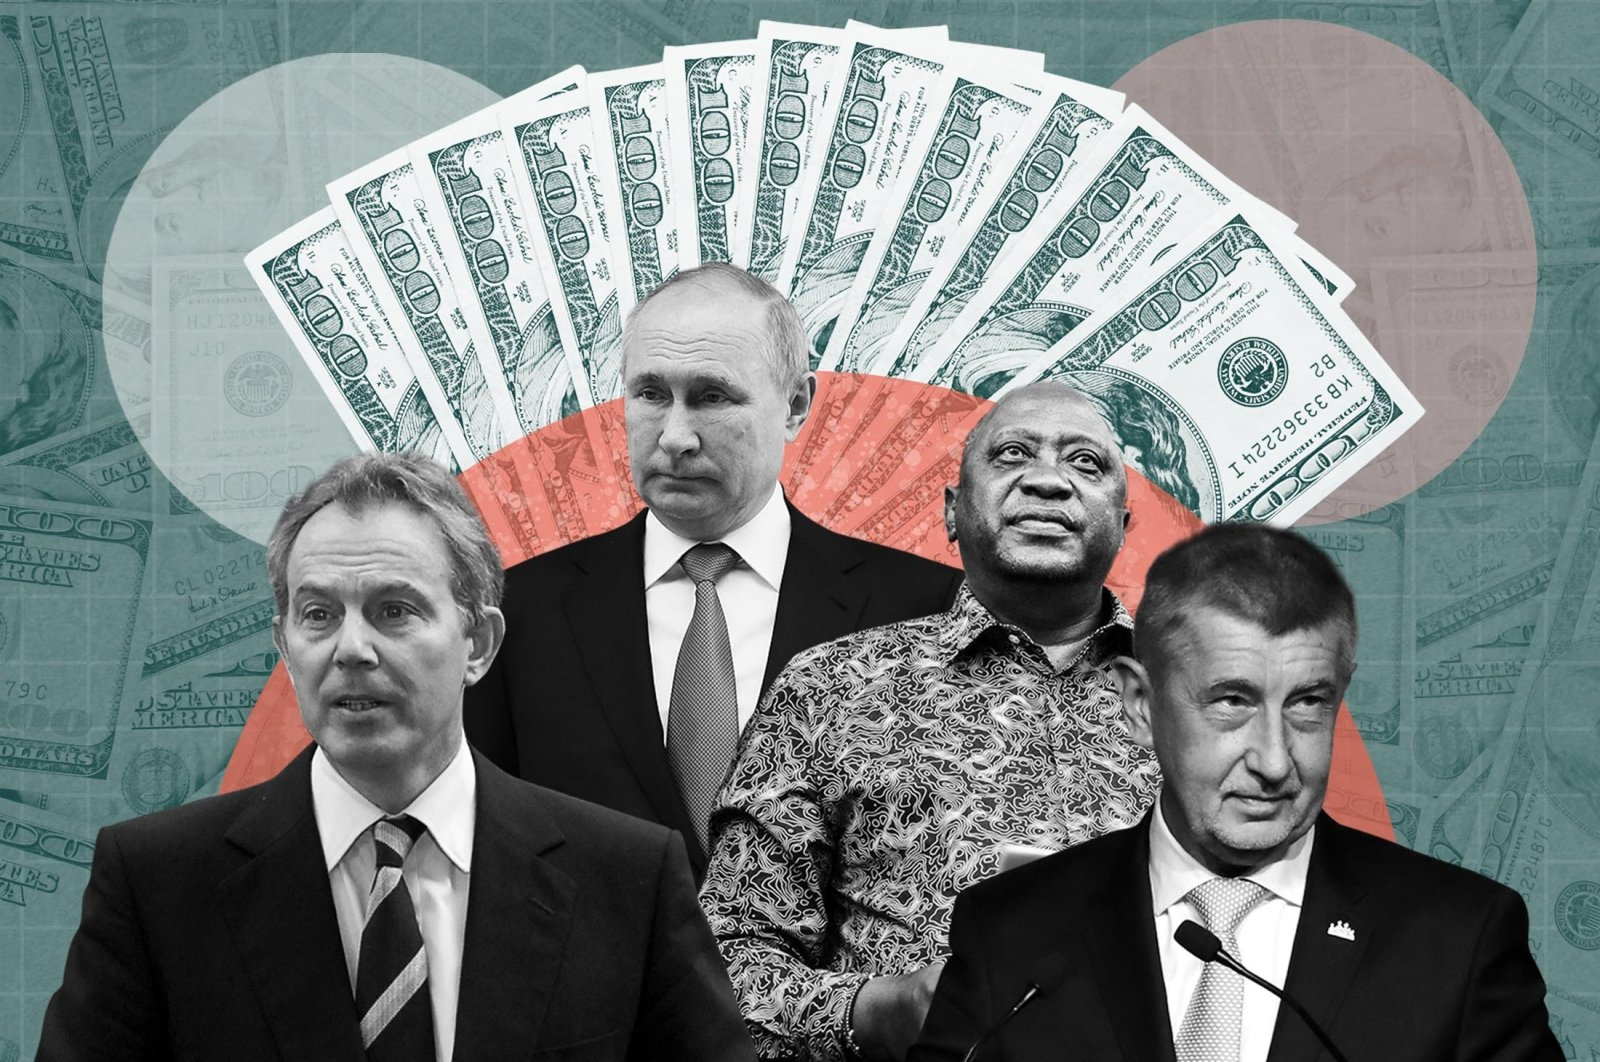 """The picture shows former U.K. Prime Minister Tony Blair (L), Russian President Vladimir Putin (2nd L), Kenya's President Uhuru Kenyatta (C) and Czech Prime Minister Andrej Babis (R), who are of 330 current and former politicians identified as beneficiaries of the secret accounts in recently published data leak dubbed the """"Pandora Papers."""" (Daily Sabah Photo)"""